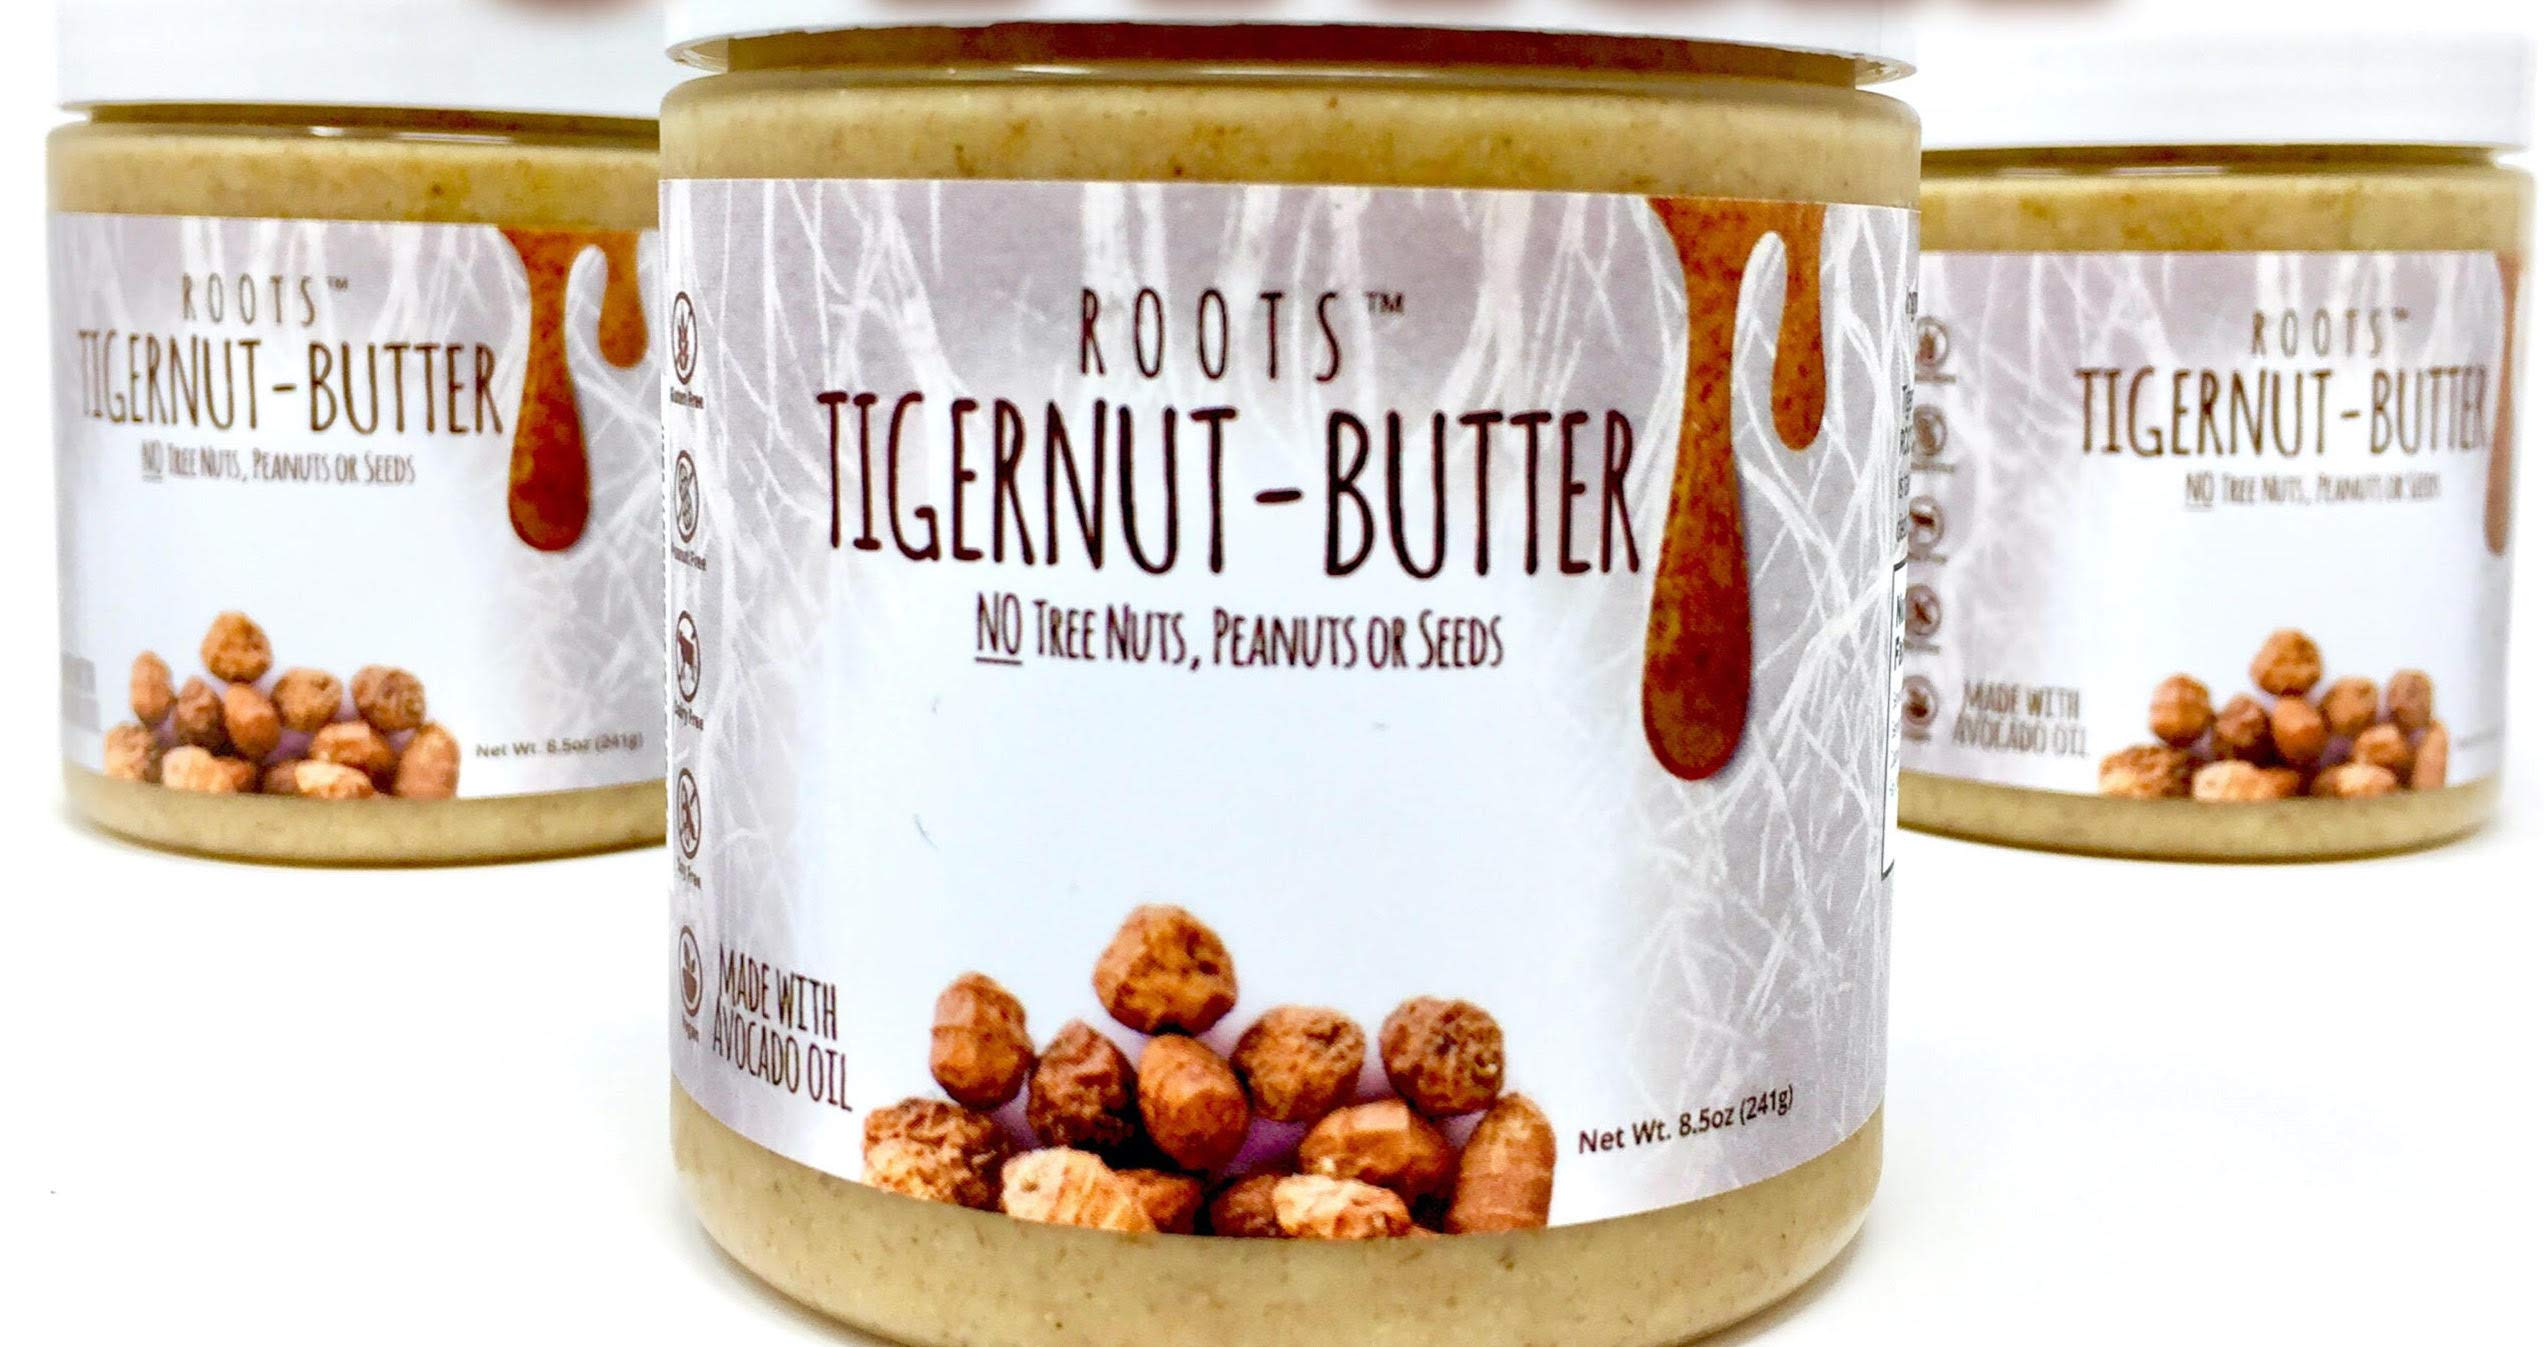 ROOTS Tigernut Butter - Aip Diet and Paleo, Vegan Compliant - Allergen Friendly - Nut Free, Seed Free, Gluten Free, Soy Free - Tiger nut - Aip Snack - (8.5 ounces each) Original Flavor 3 Pack